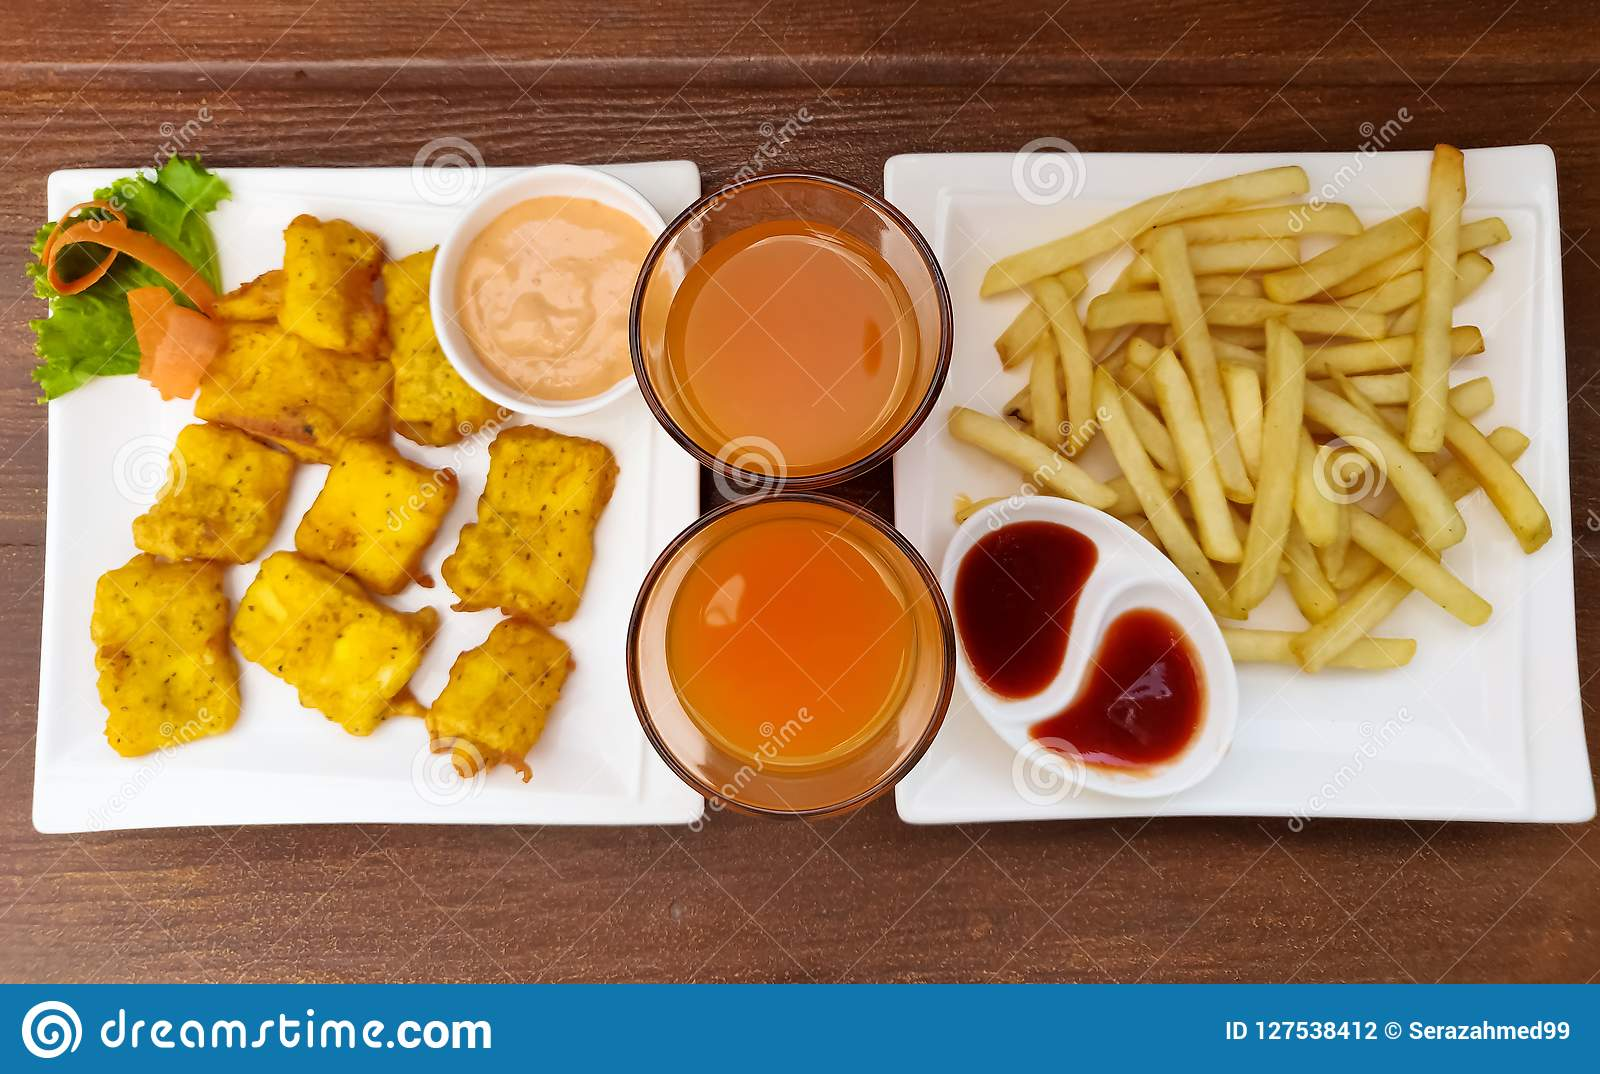 Fries, Pakora and Juice